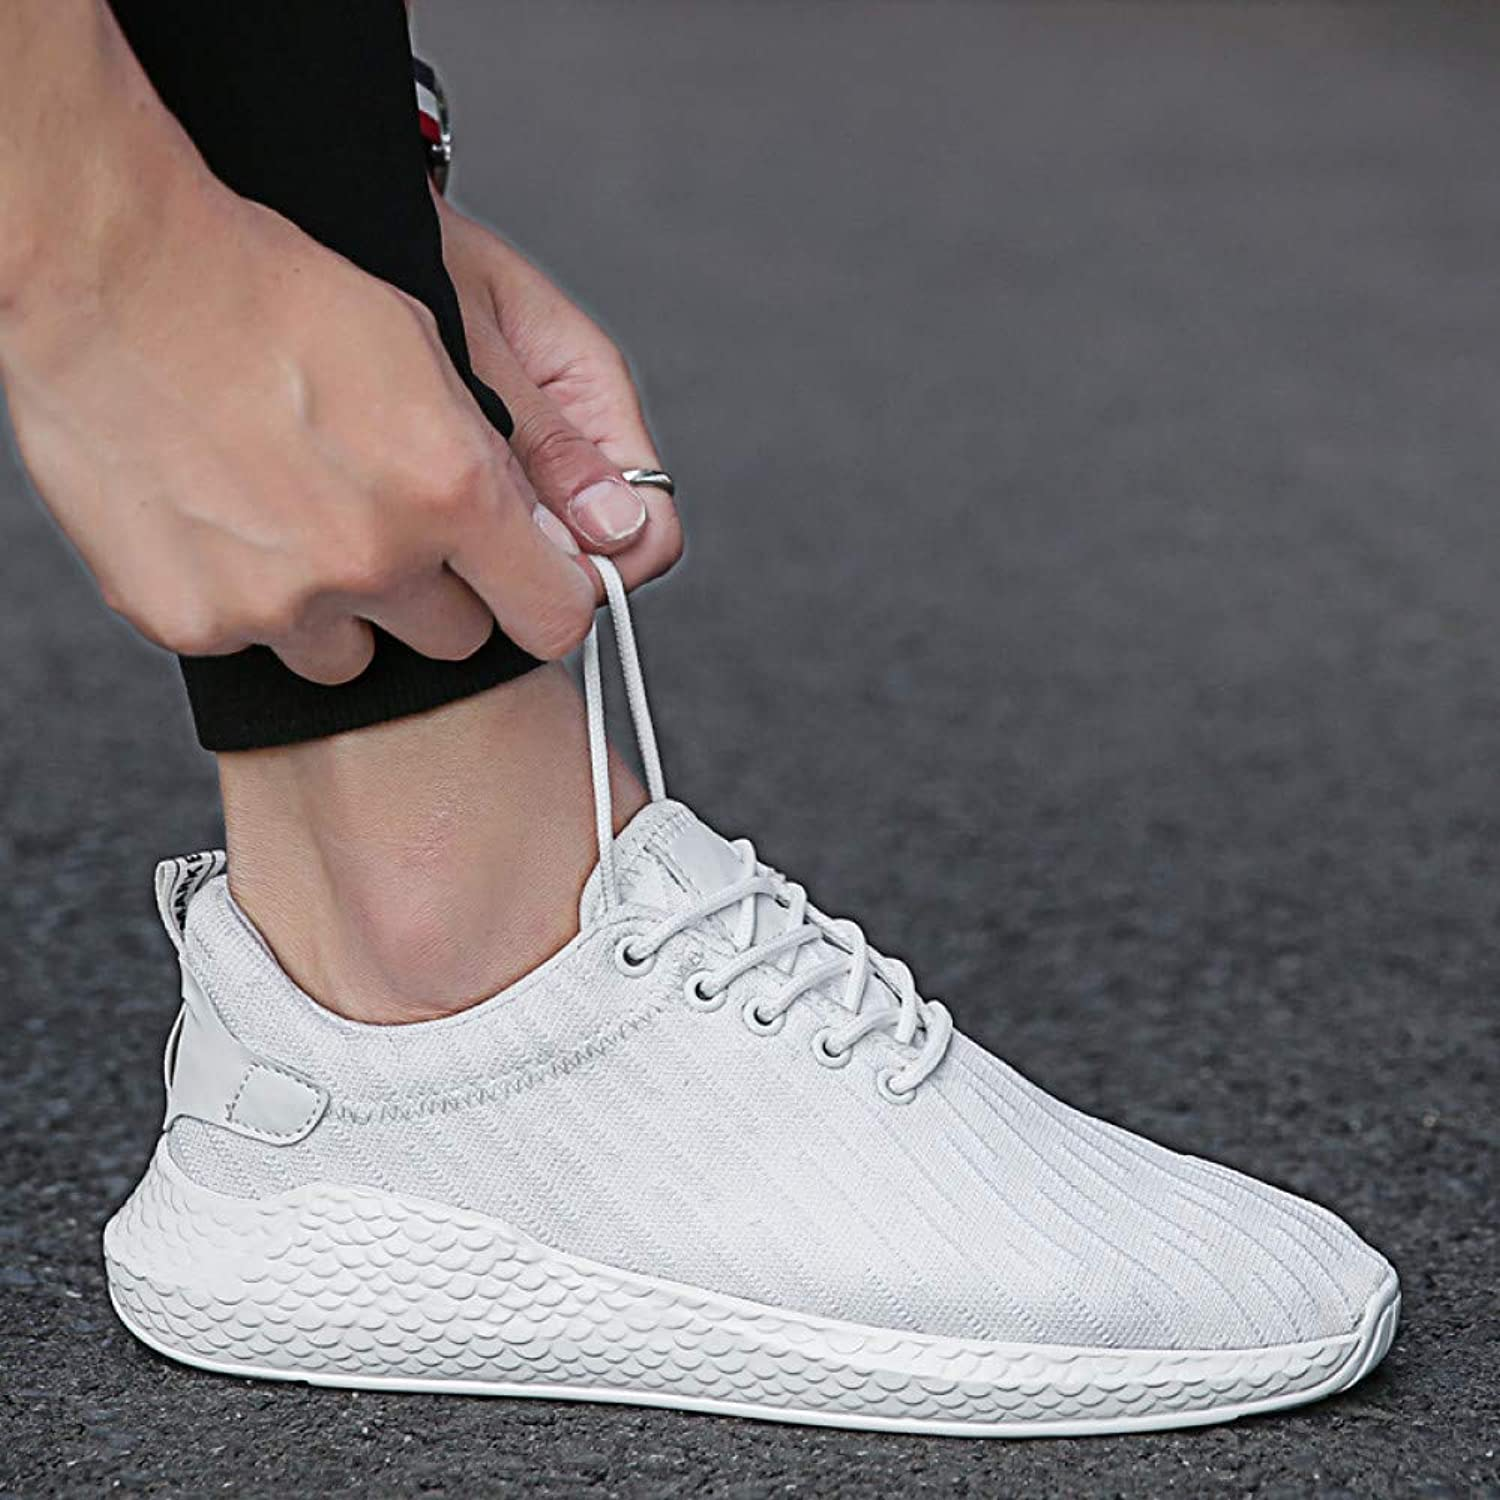 WDDGPZYDX Men shoes soft casual shoes Fashion male Comfortable sneakers Breathable summer shoes pour The Footwear